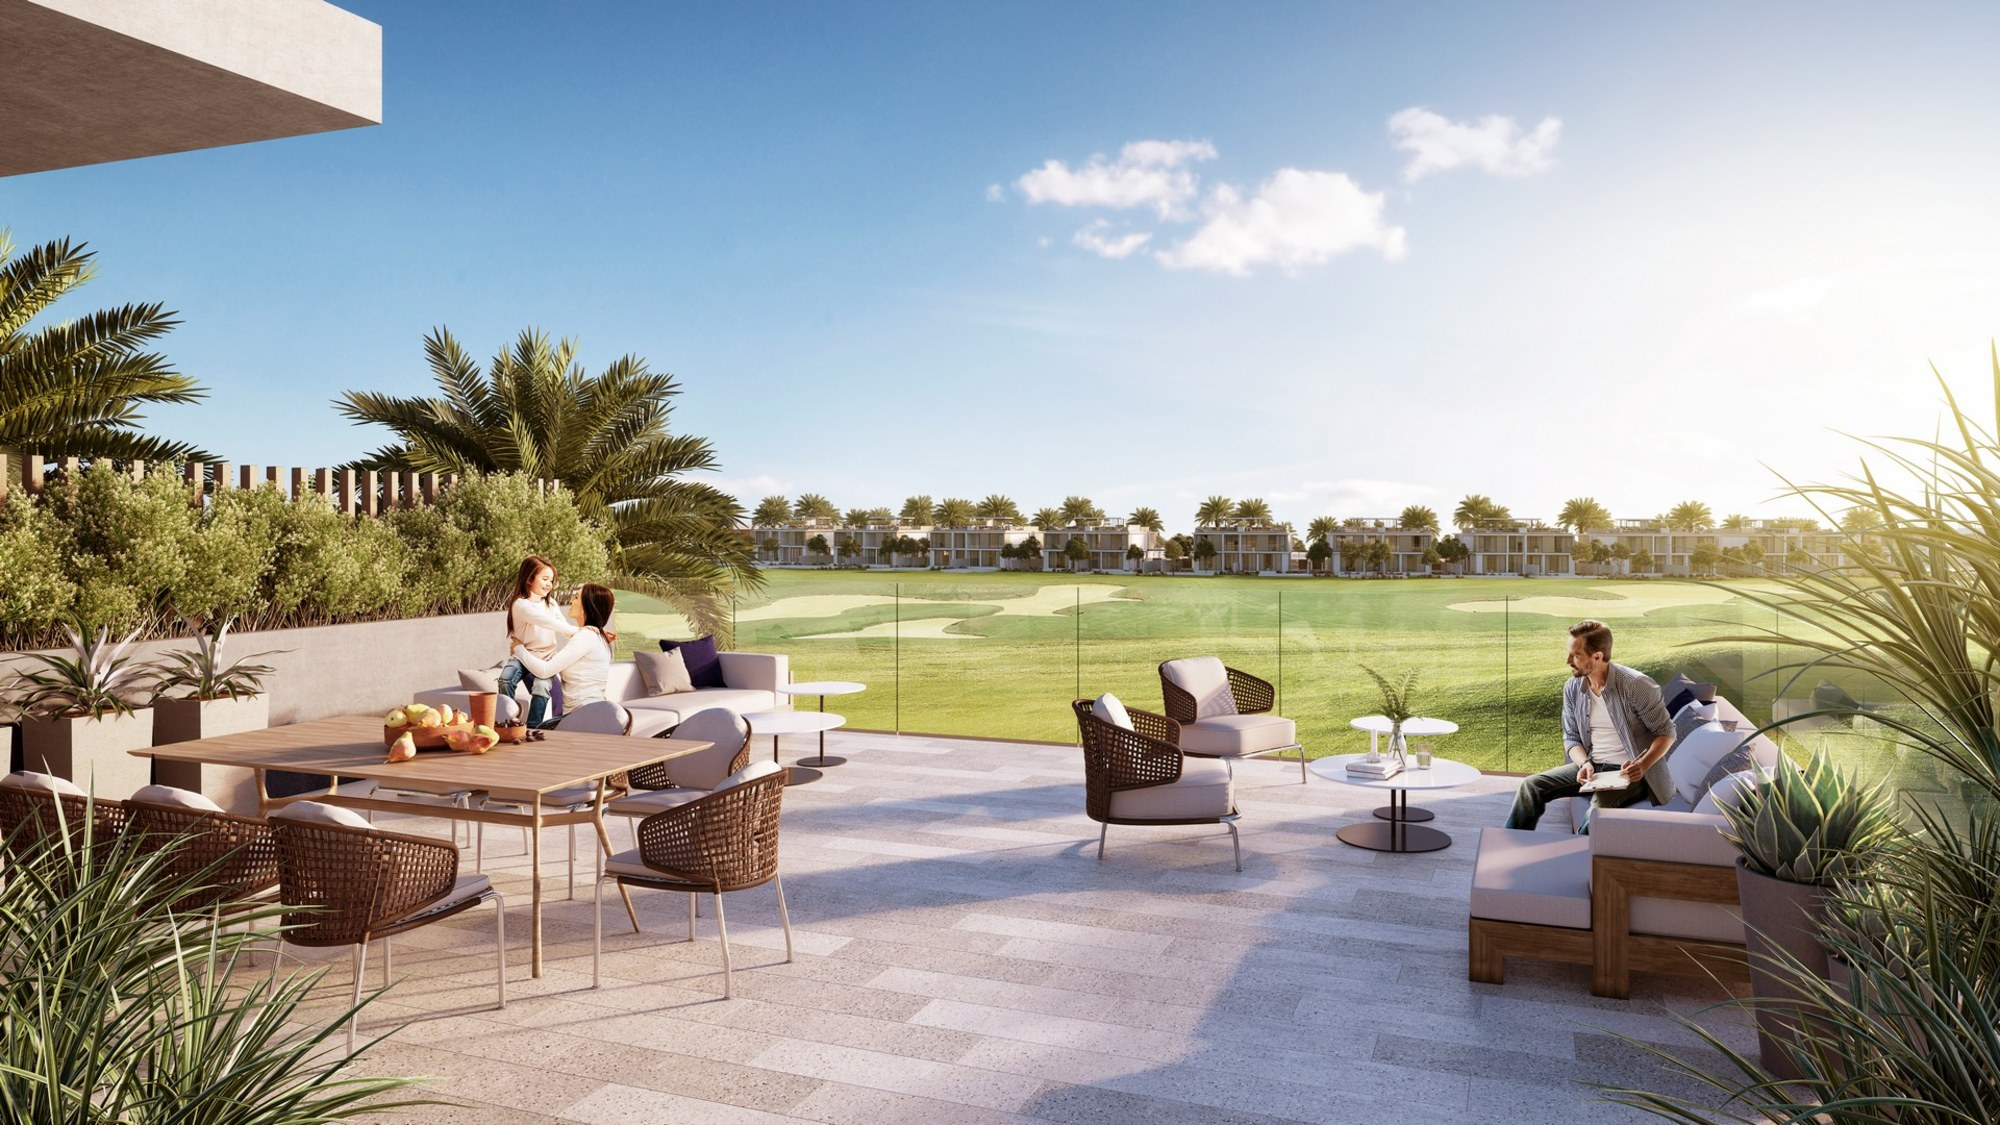 Stunning Golf Club location with Amazing Views